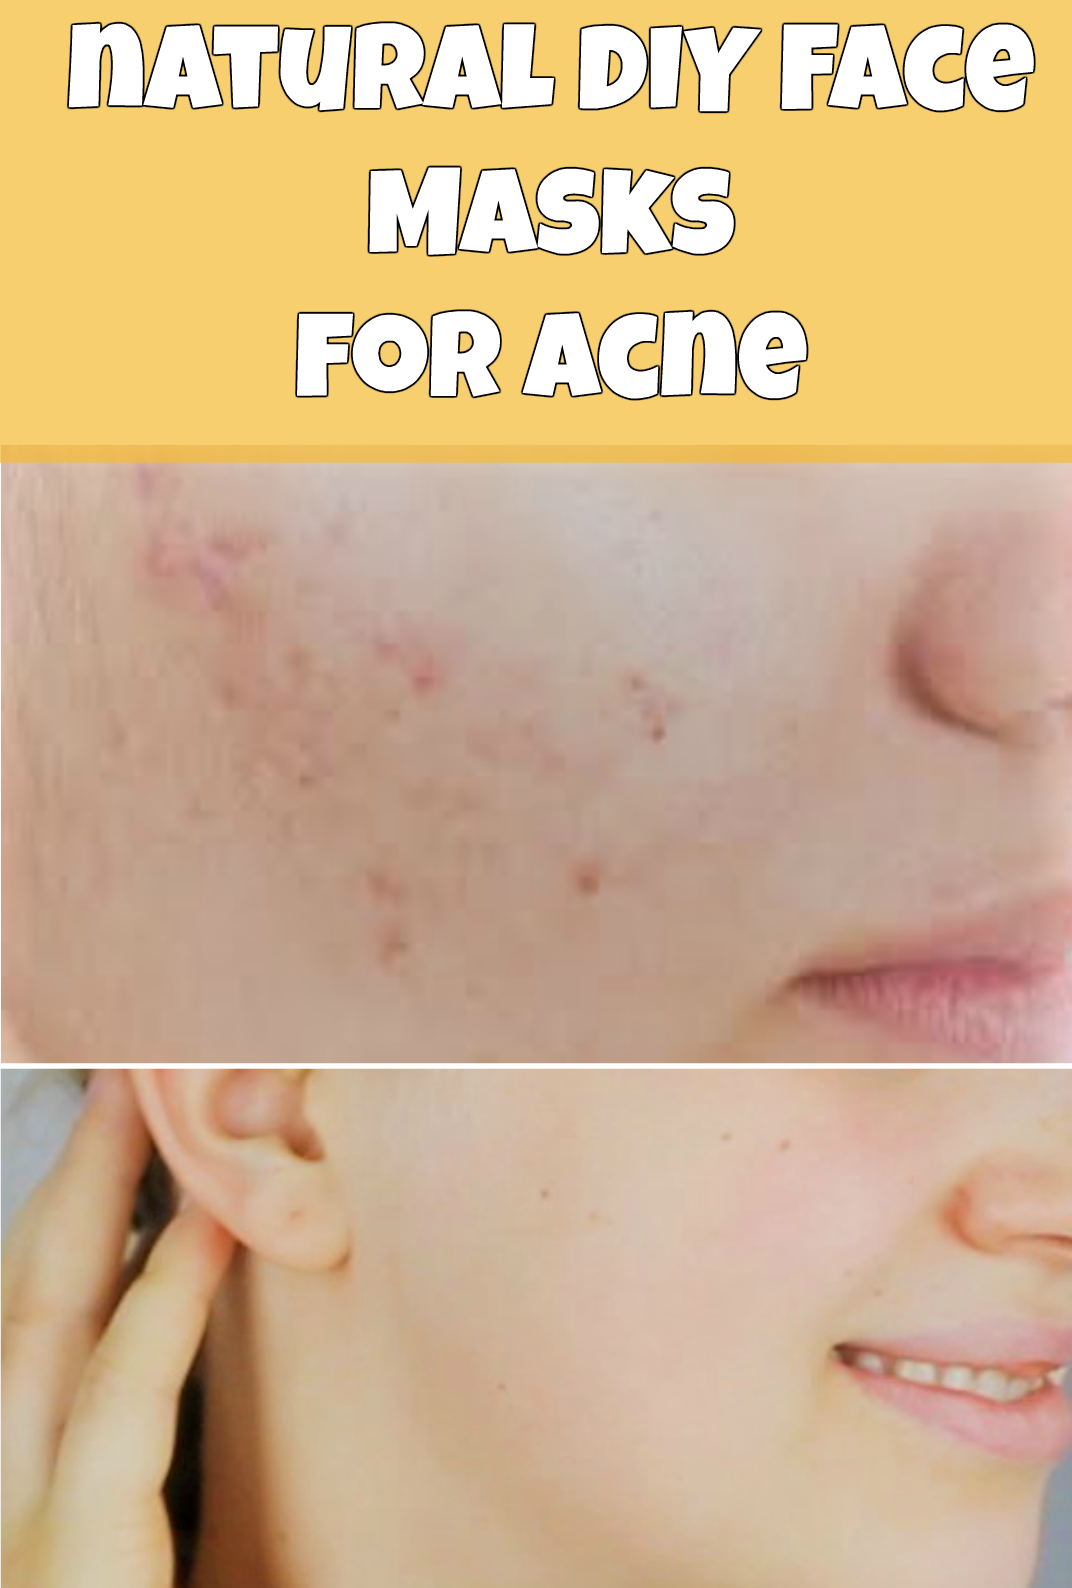 Natural DIY Face Masks for Acne face masks, acne, acne